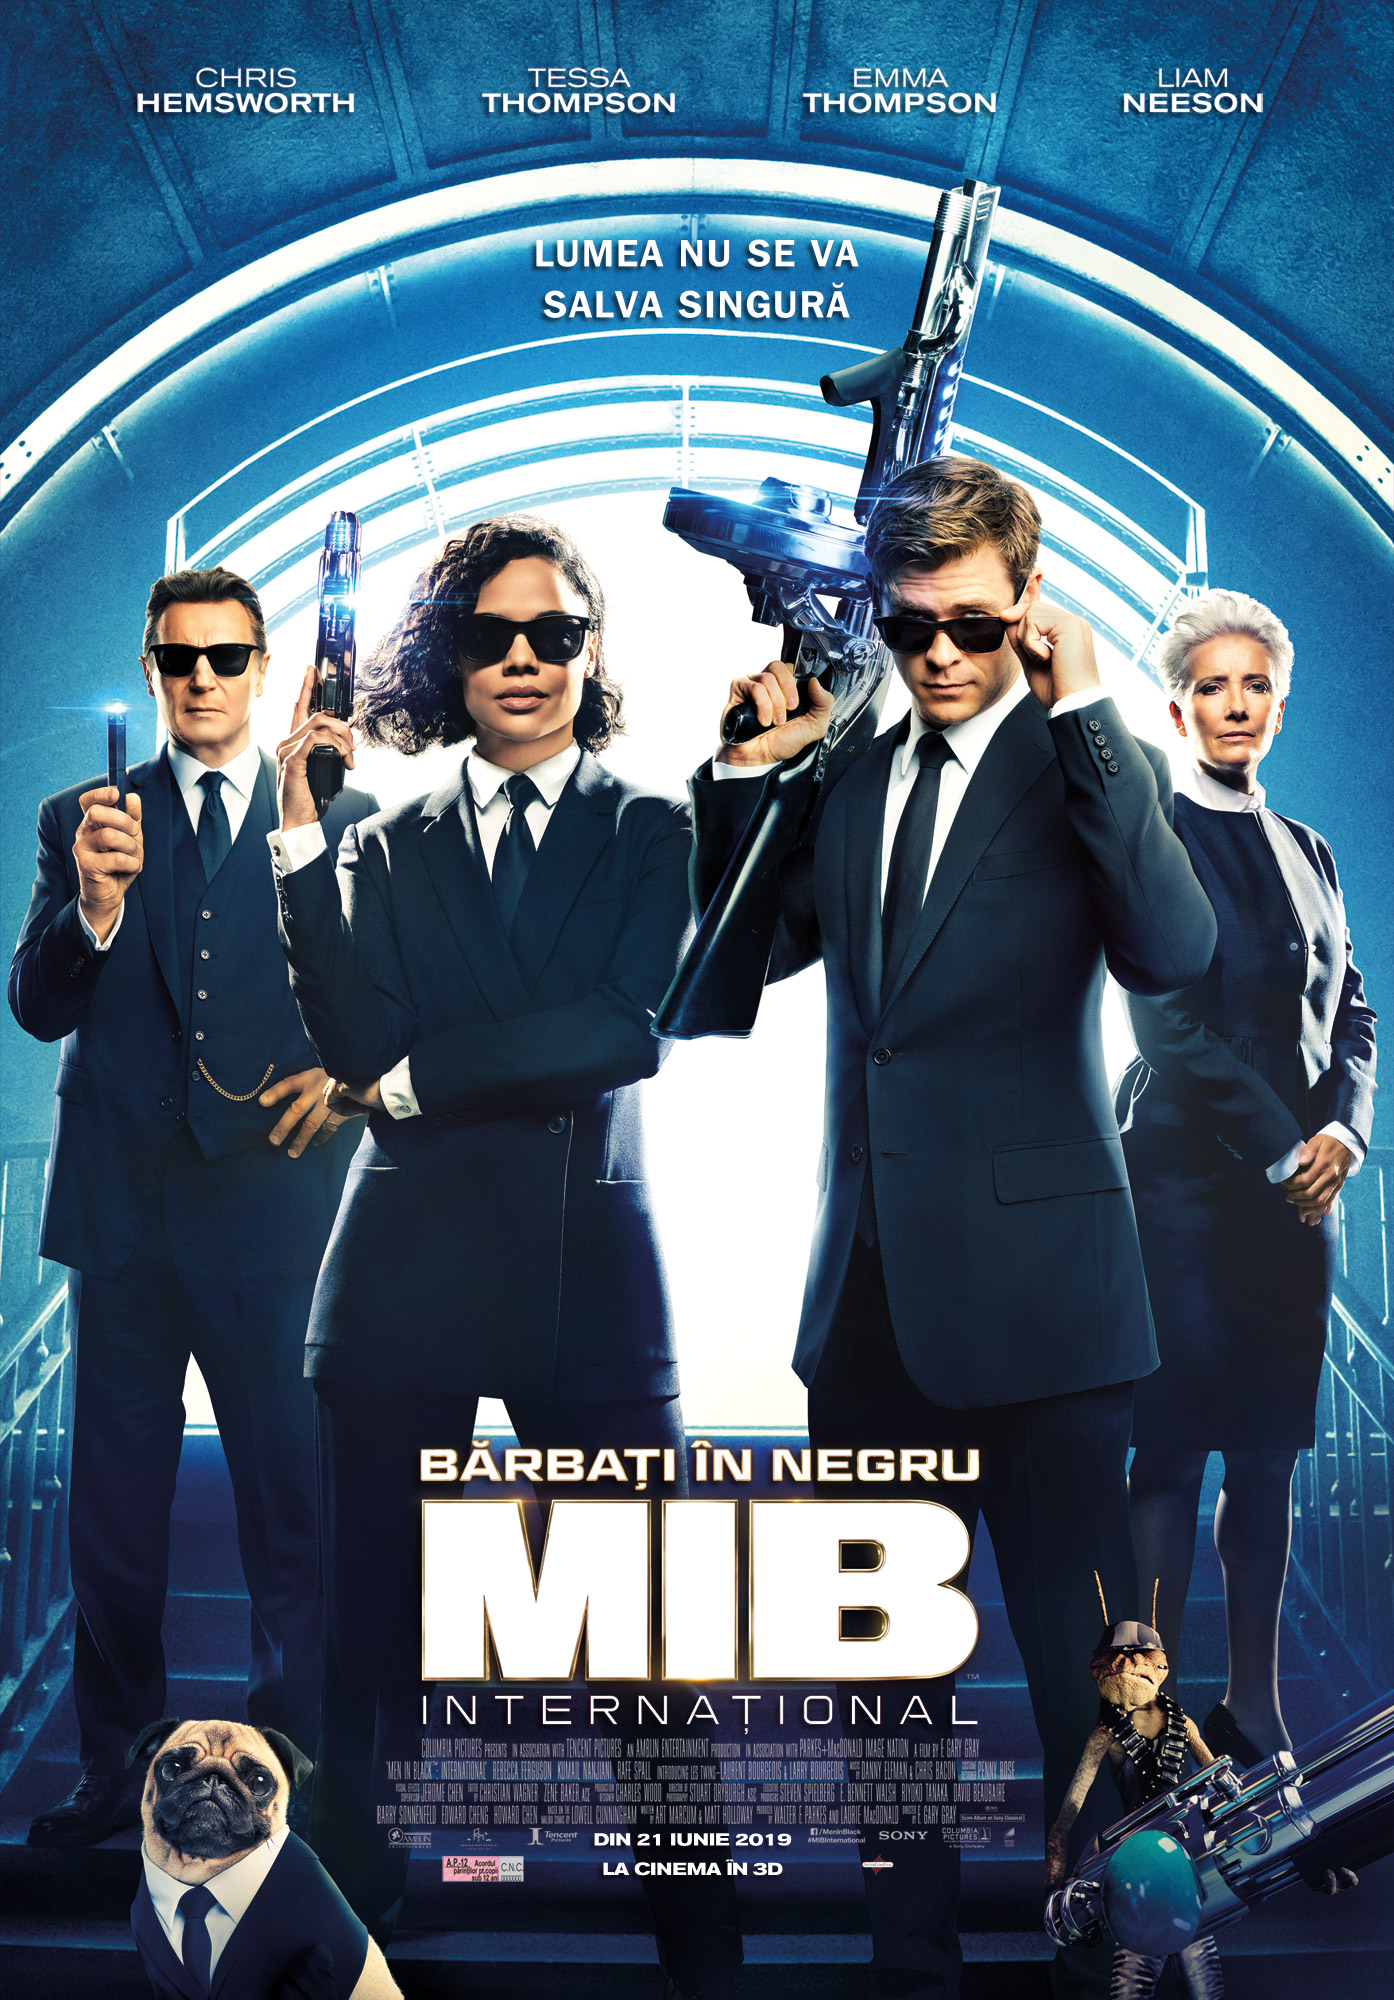 Barbati in negru International - Men in Black International POSTER ROMANIA